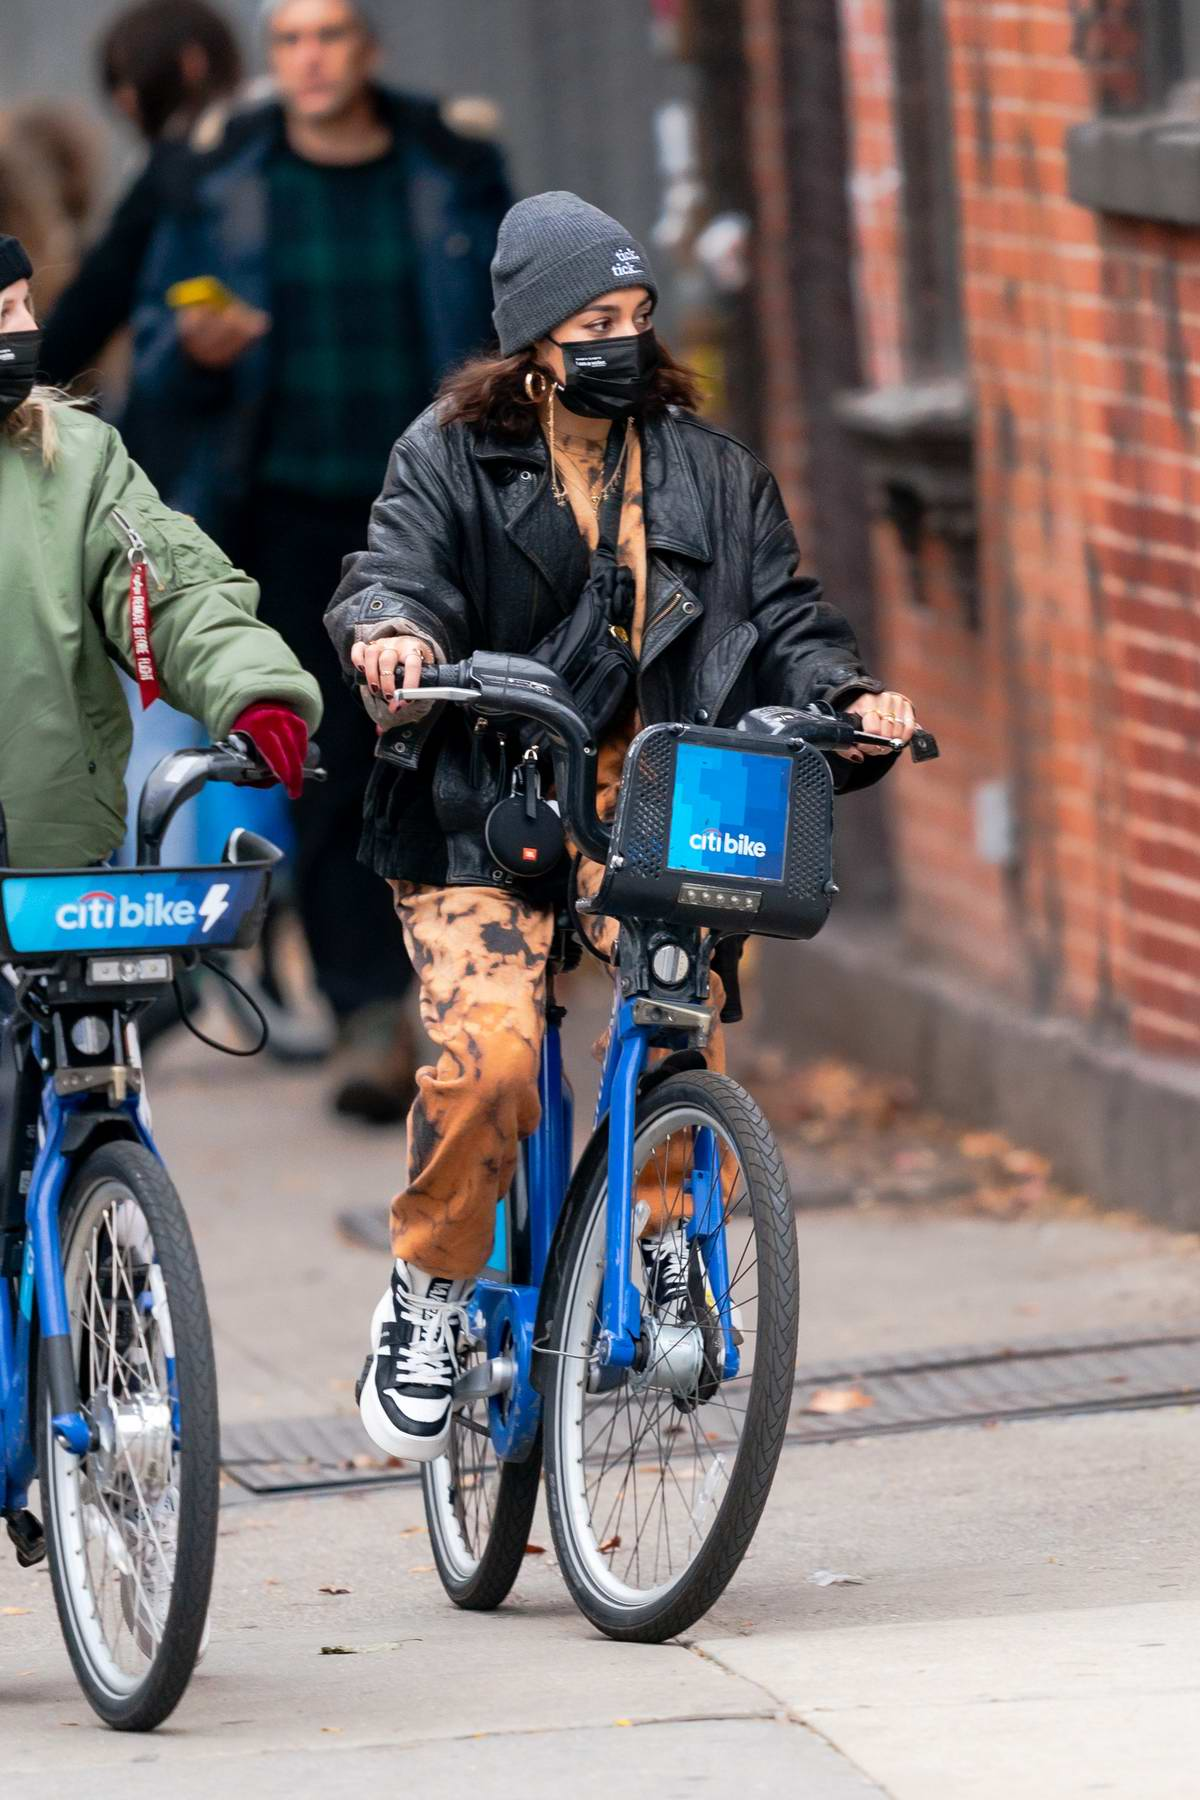 Vanessa Hudgens sports tie-dye sweats while riding around on a Citi Bike with BFF GG Magree in New York City